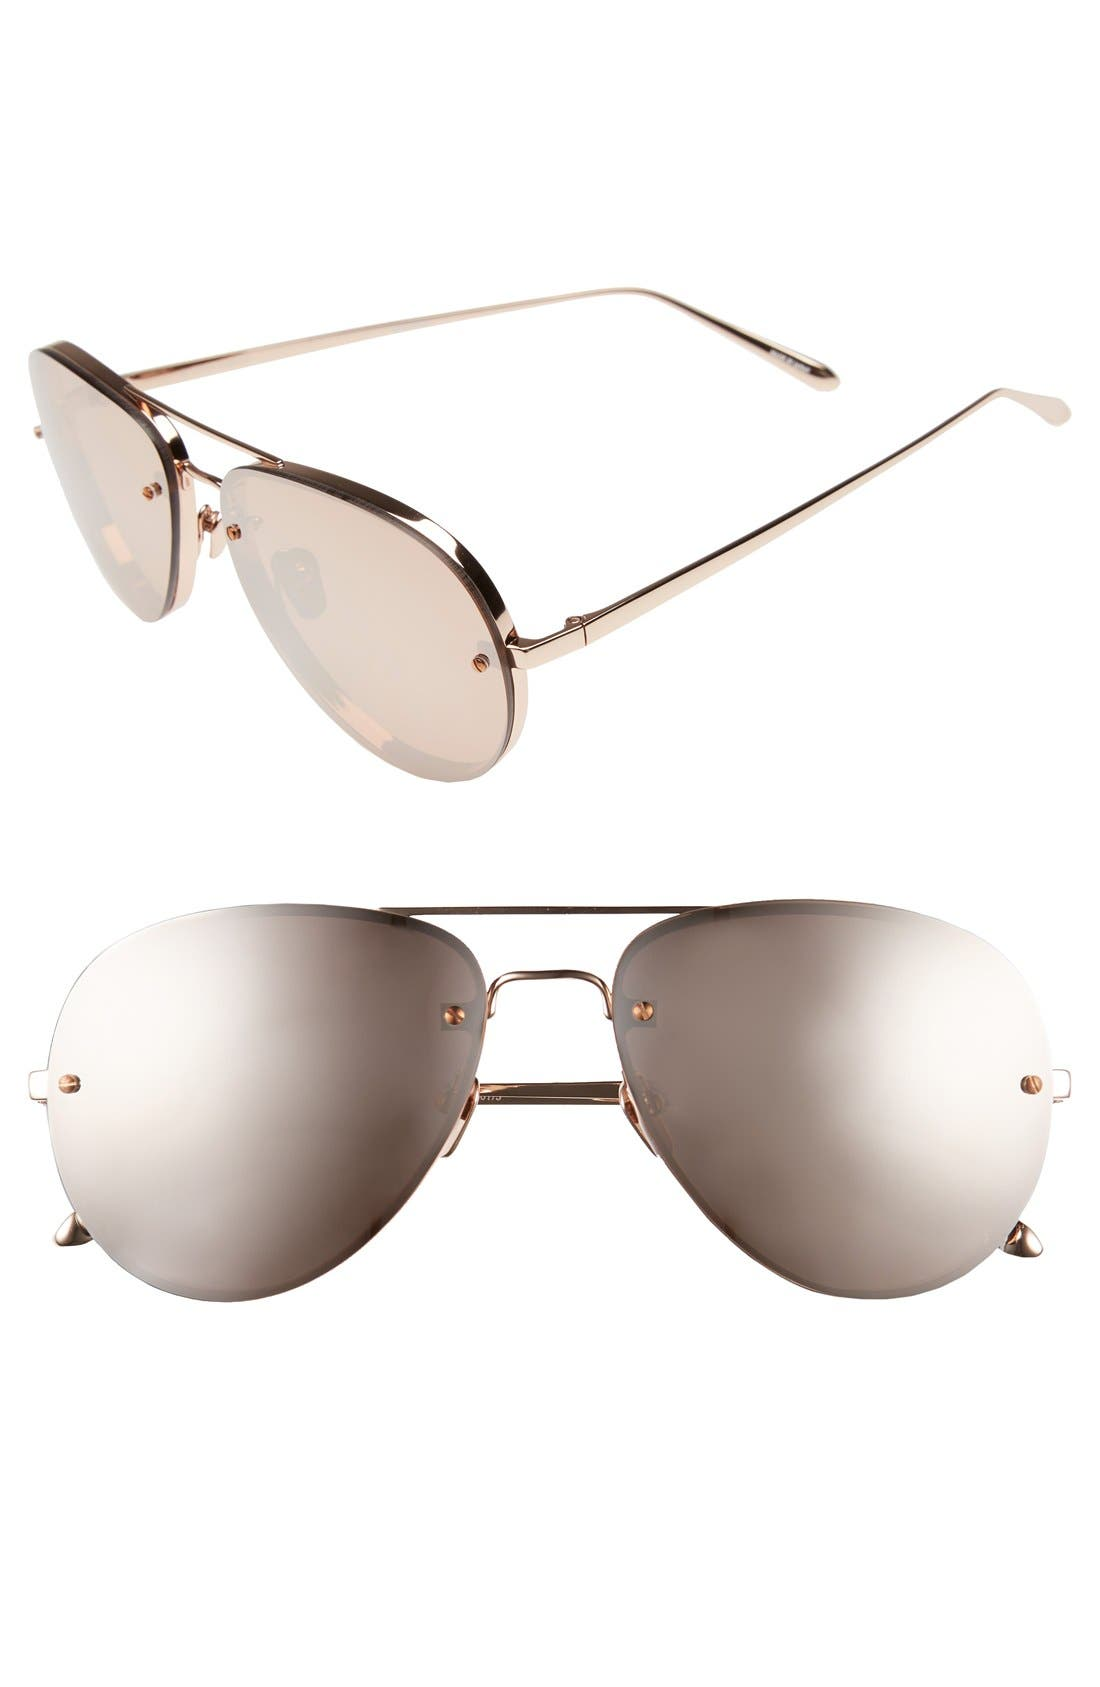 Alternate Image 1 Selected - Linda Farrow 59mm Aviator 18 Karat Rose Gold Trim Sunglasses